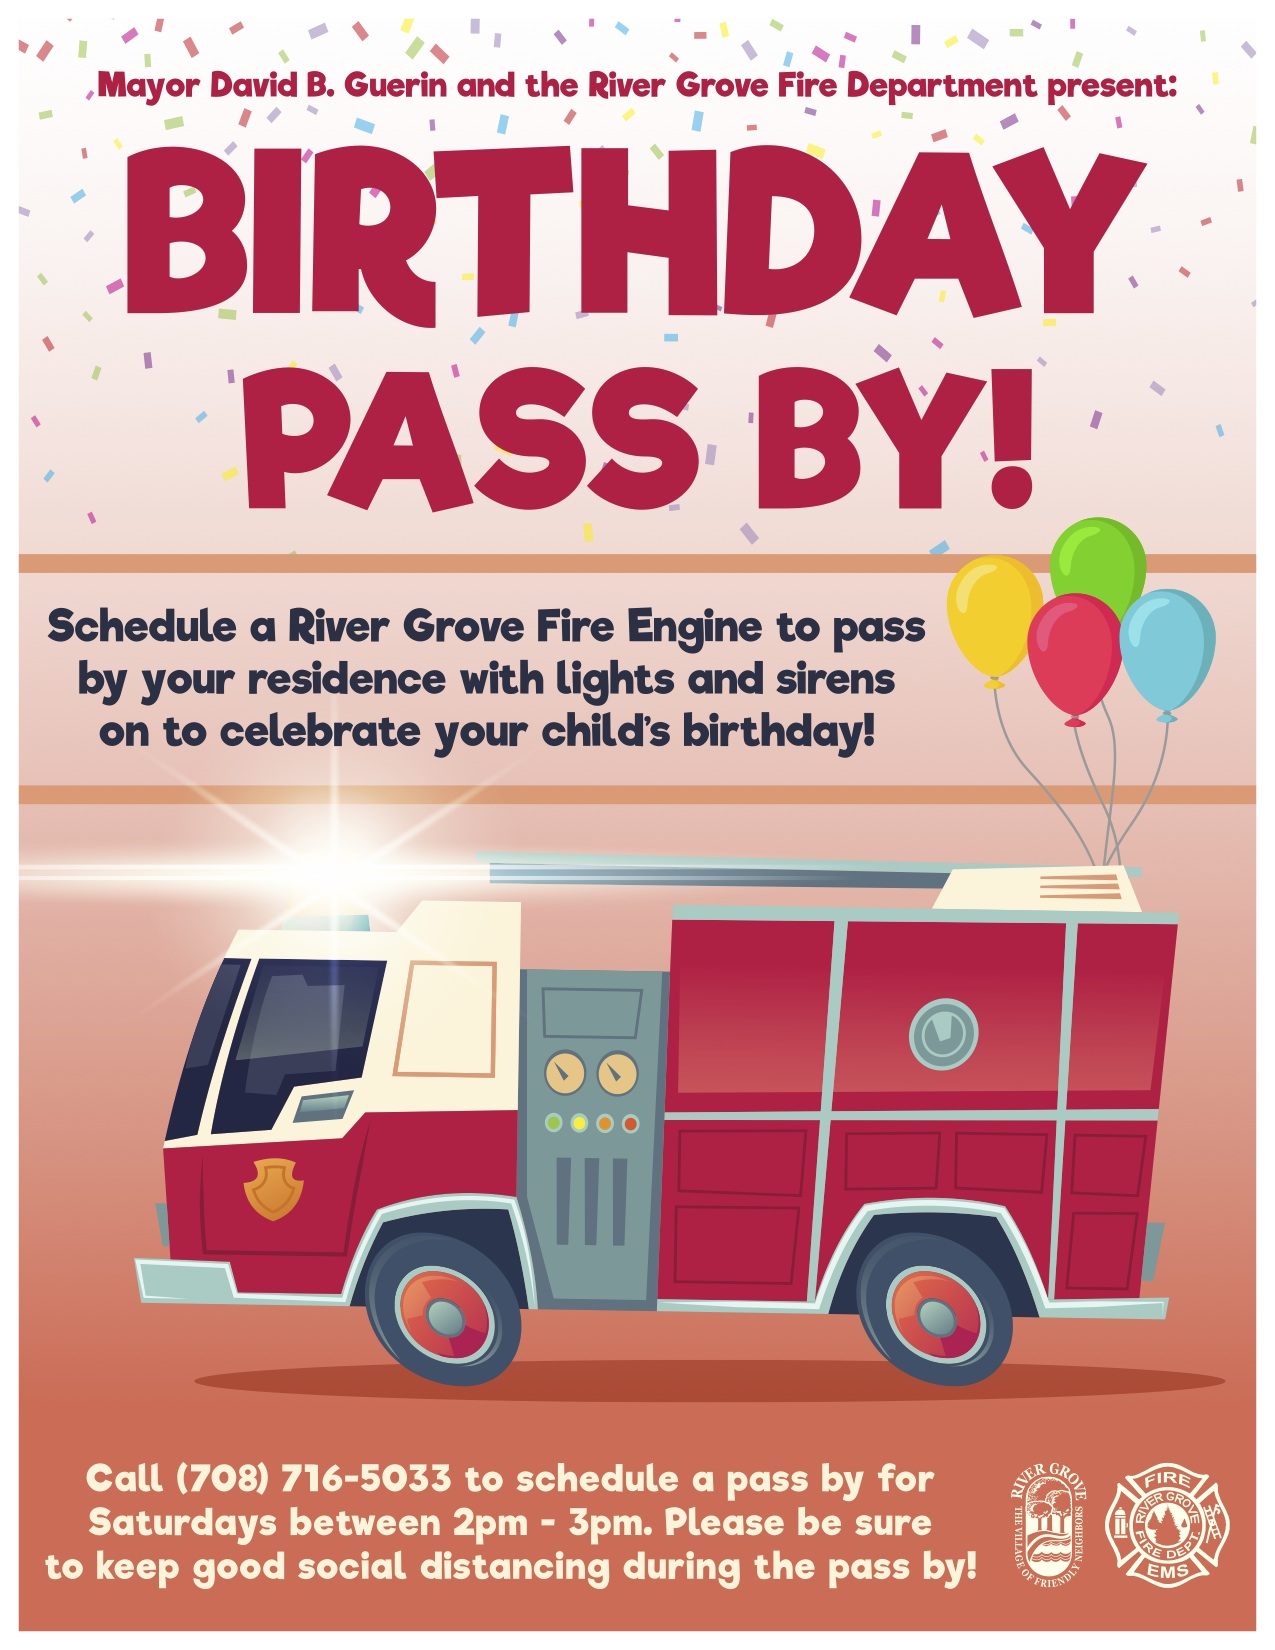 Flyer with information about a fire truck visit on your child's birthday